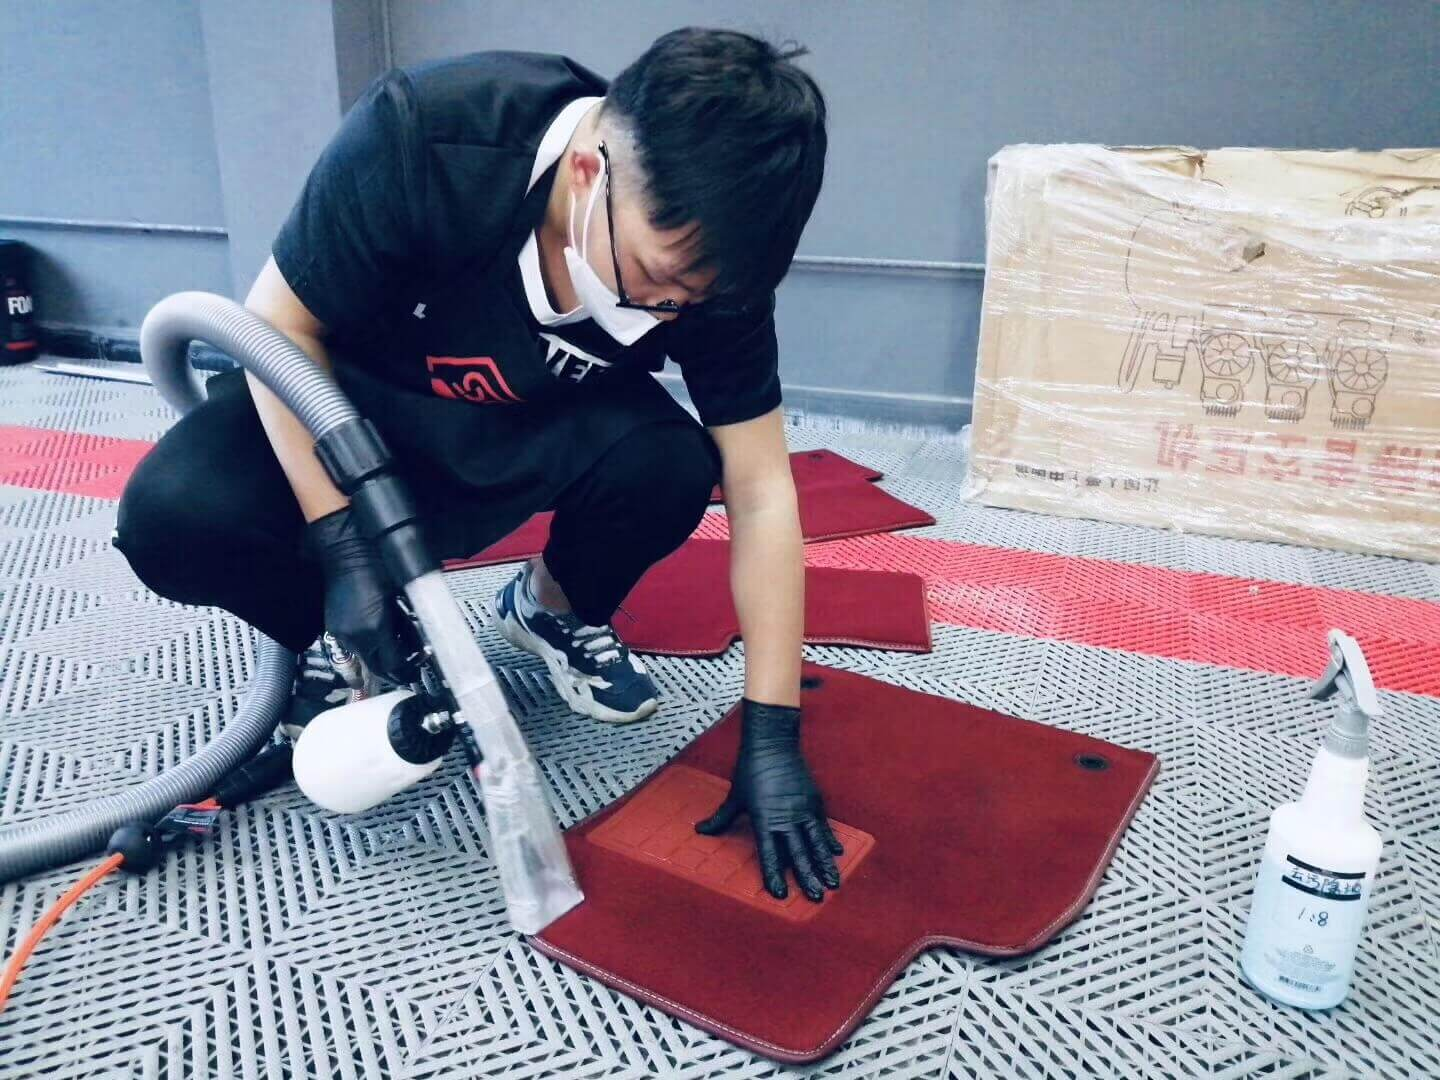 suction cleaning gun clean carpet